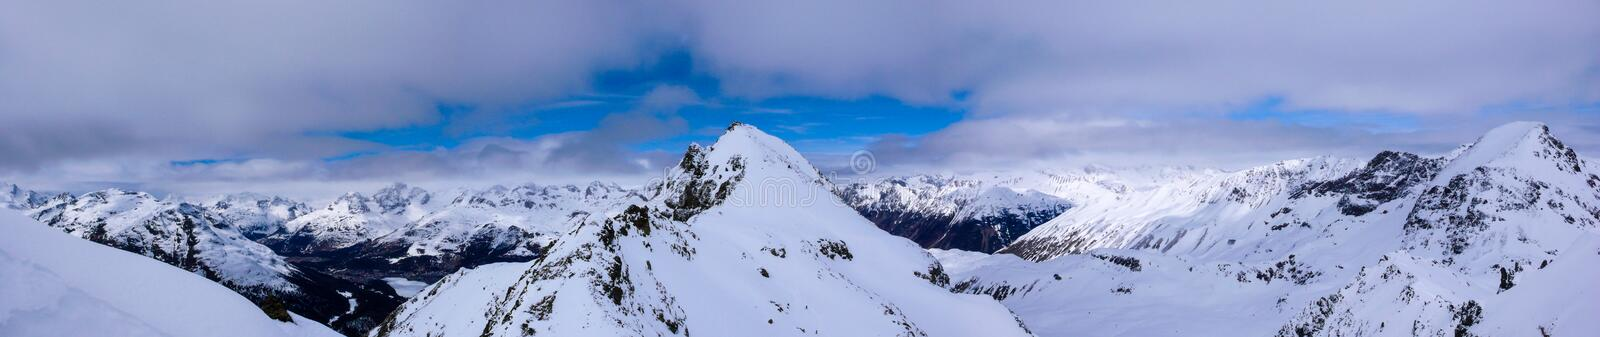 Panorama winter mountain landscape with peaks and the lakes near St. Moritz in the background royalty free stock photography